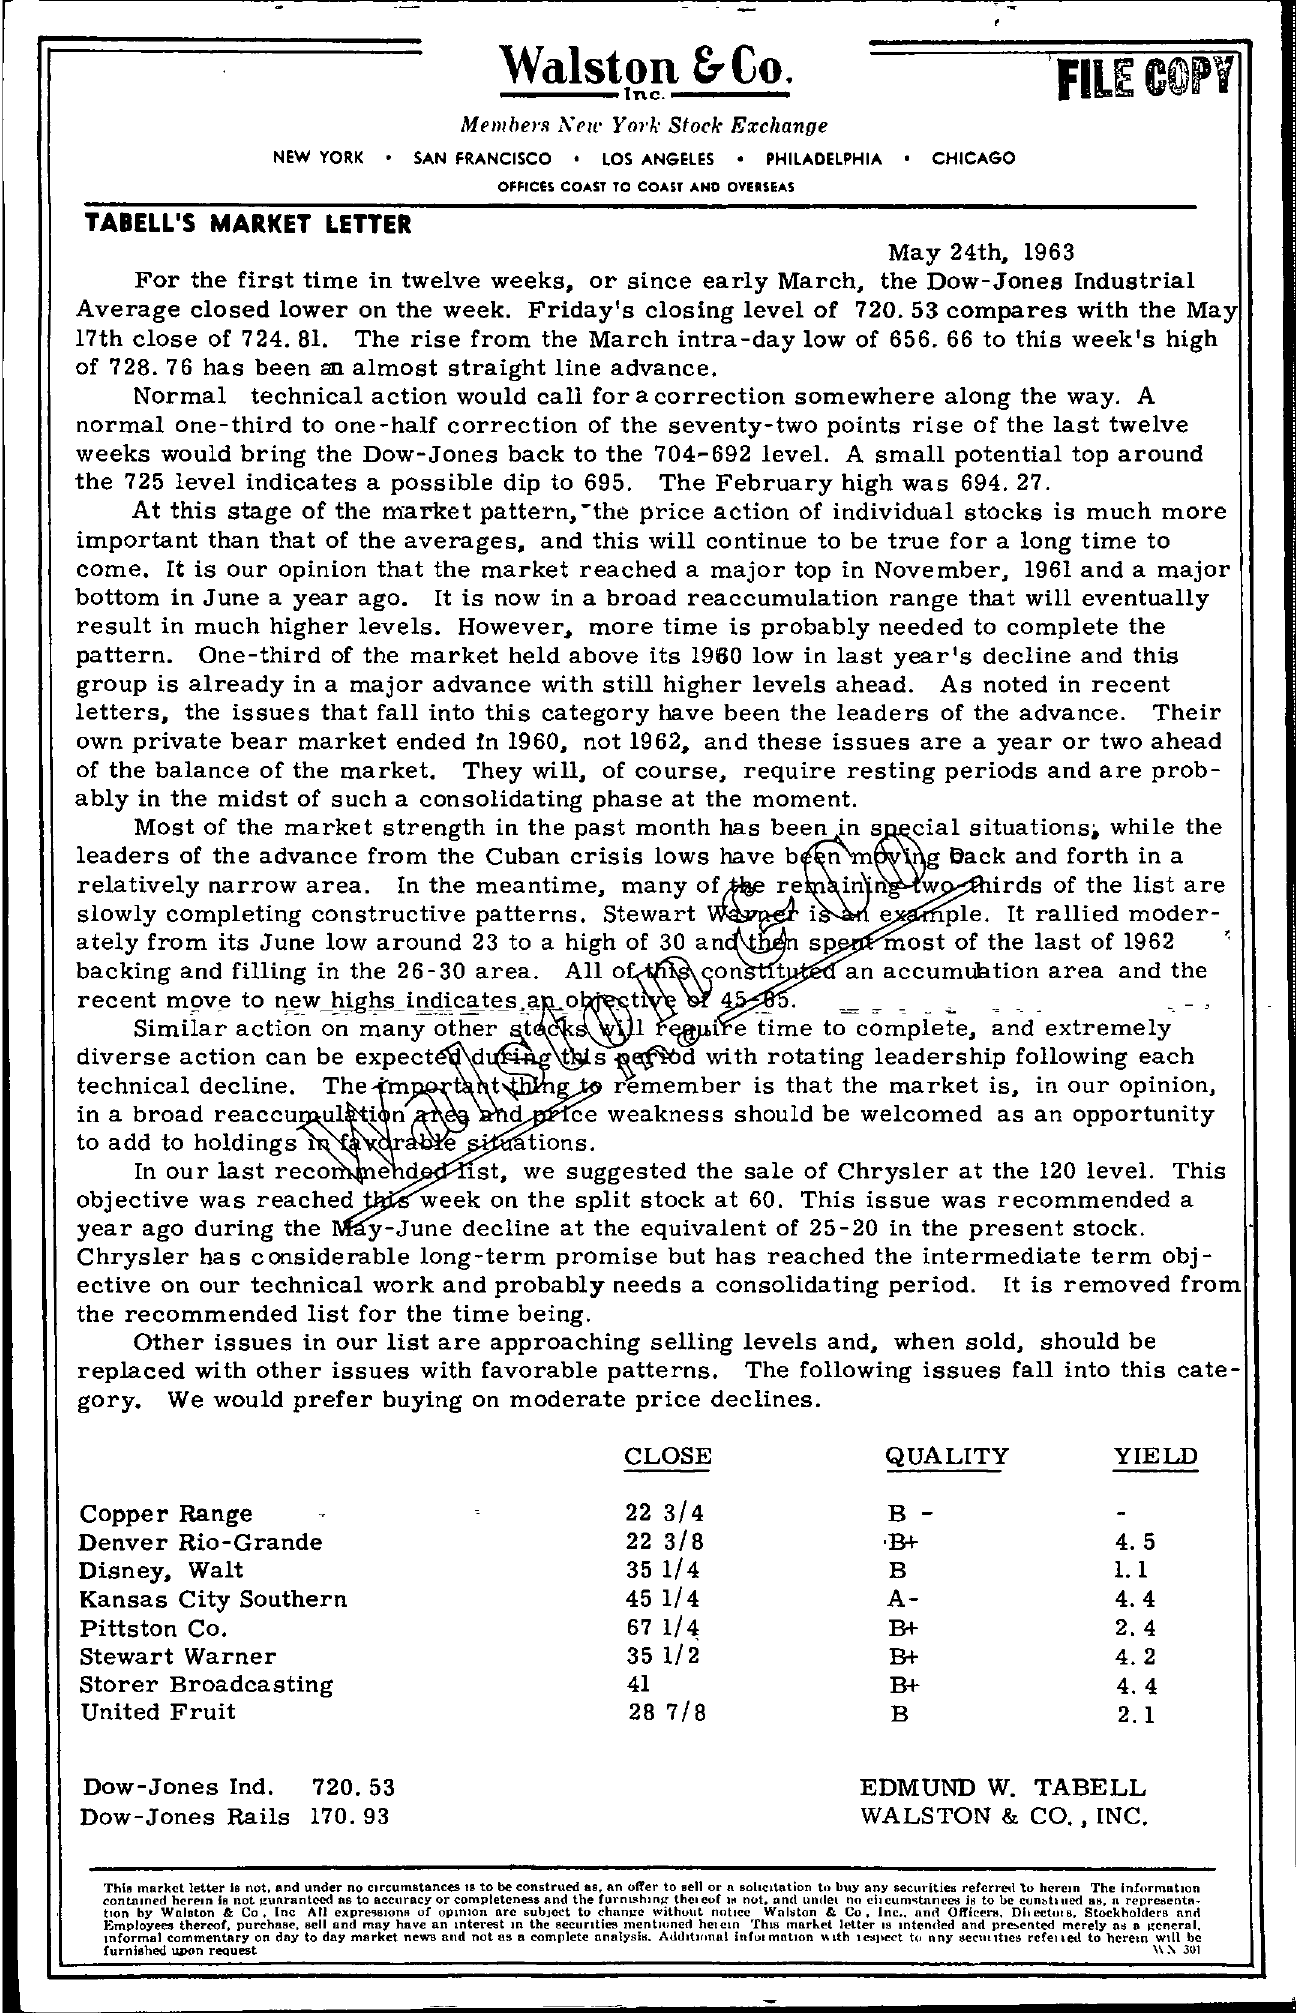 Tabell's Market Letter - May 24, 1963